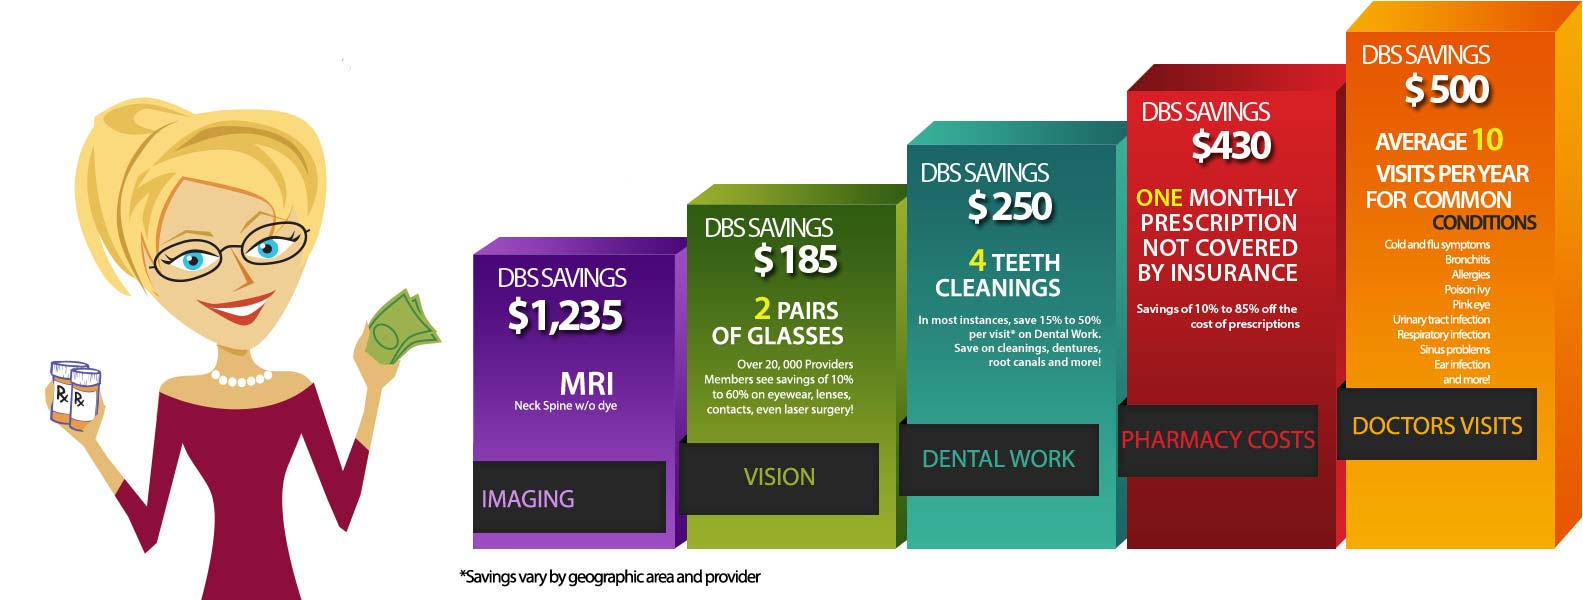 Bar graph showing savings examples: $1235 savings on MRI, $185 savings on 2 pairs of glasses; $250 savings on 4 teeth cleanings; $430 on one monthly prescriptioin not covered by insurance; 4500 AVERAGE 10 VISITS PER YEAR for common conditions